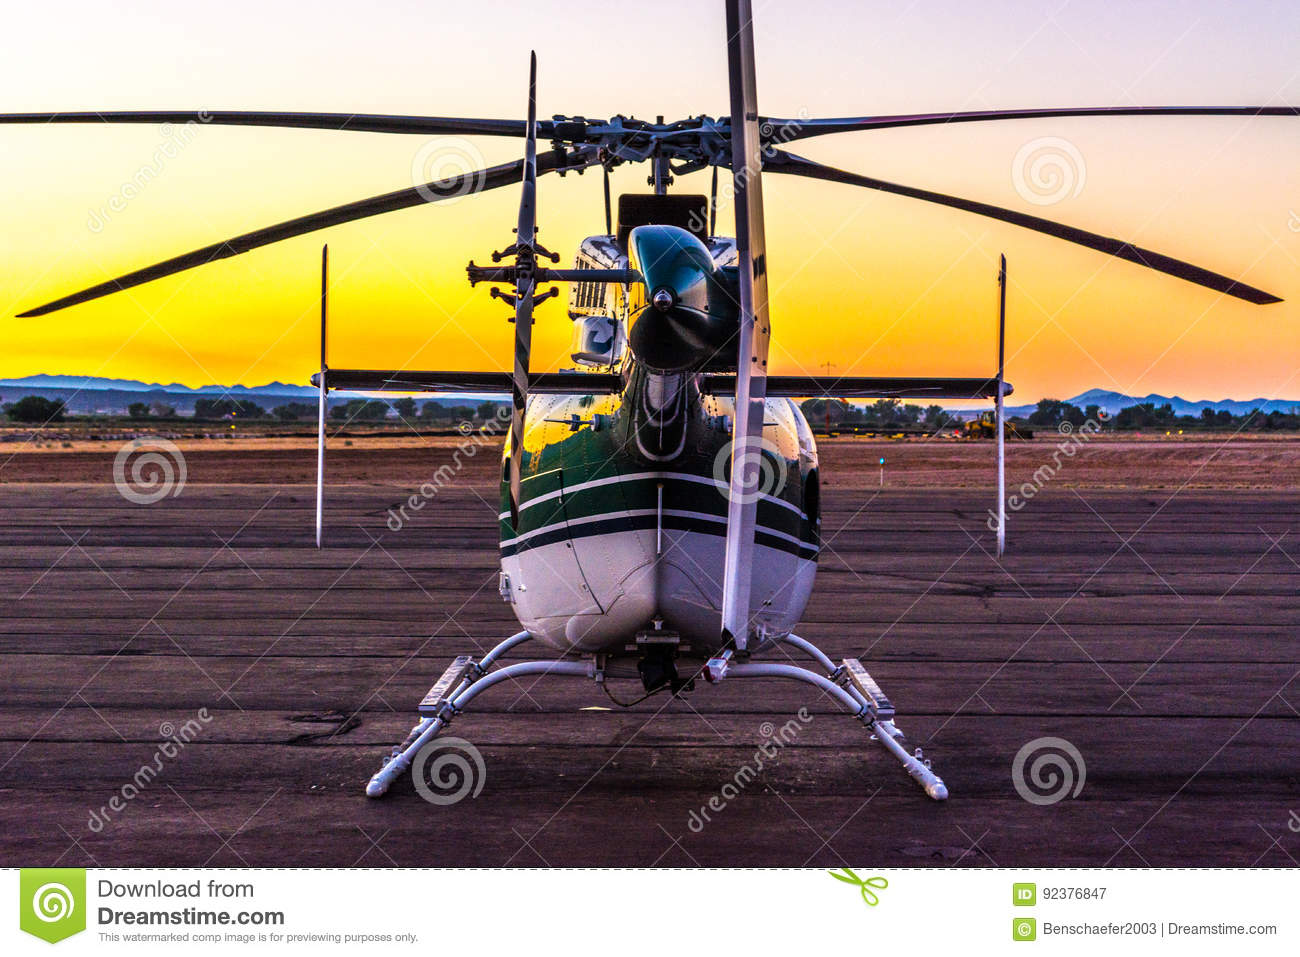 Helicopter on the Ramp